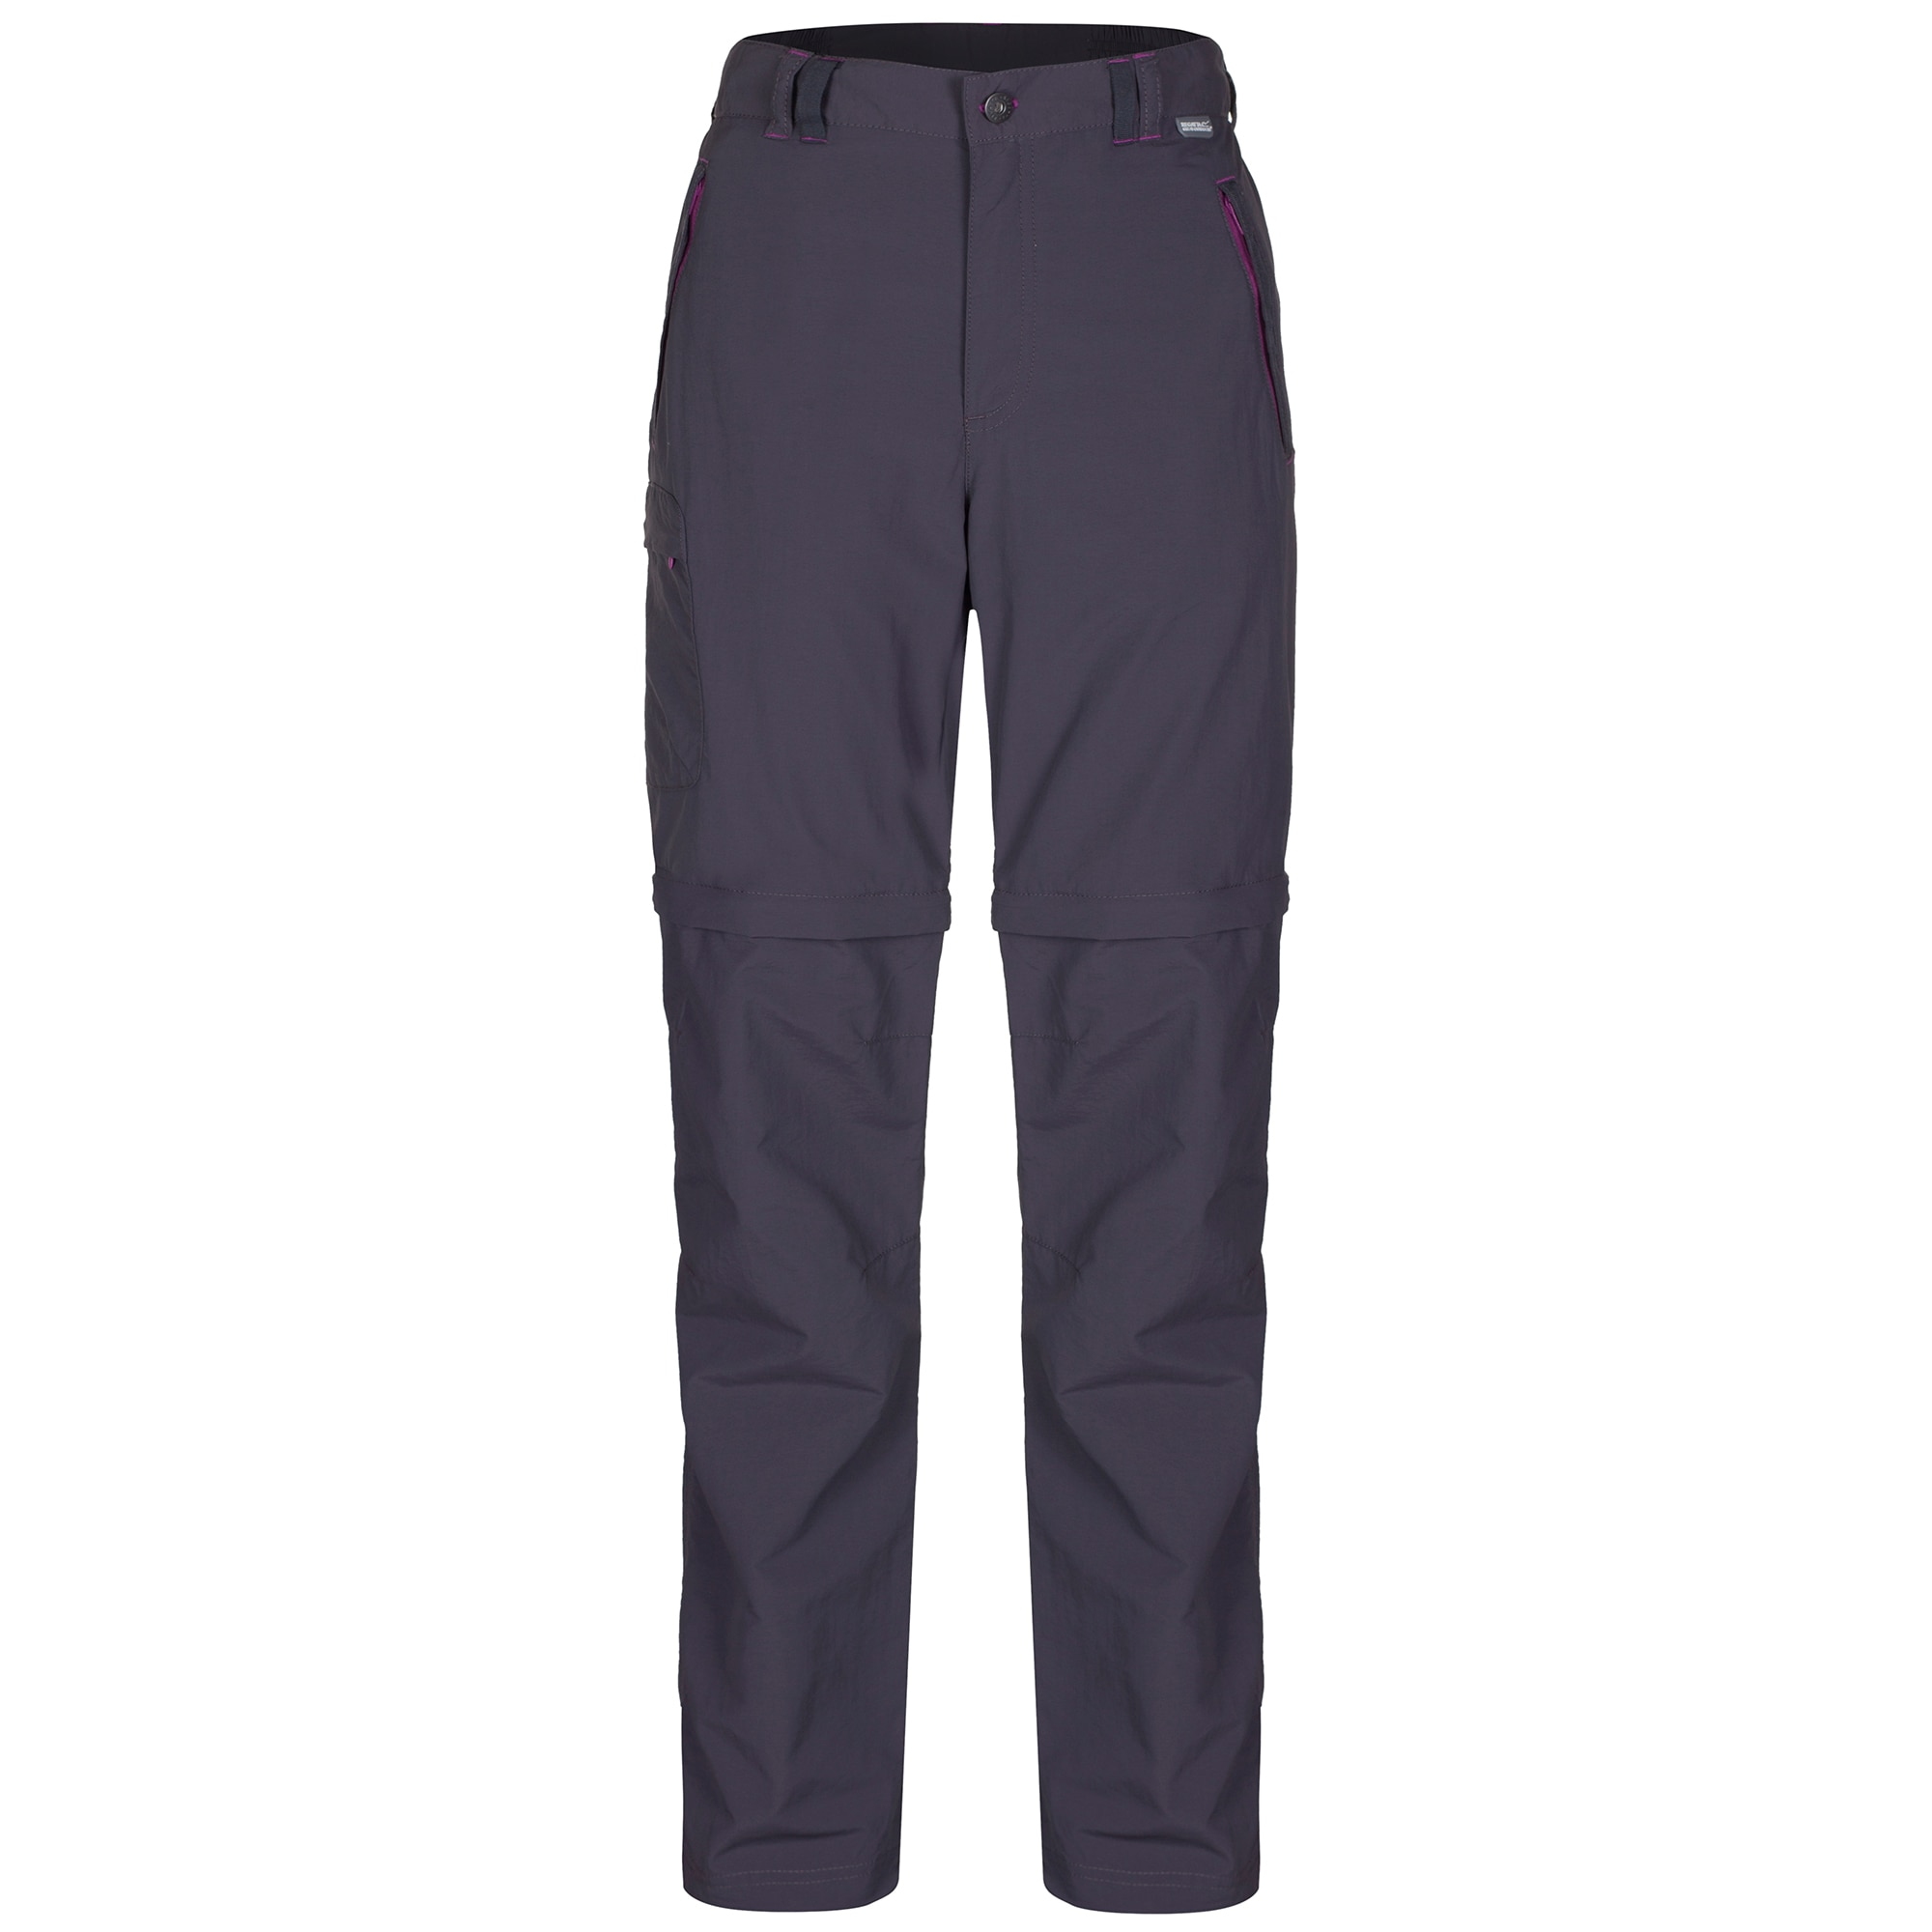 Regatta Zip-off-Hose Great Outdoors Damen Chaska Zip Off Hose